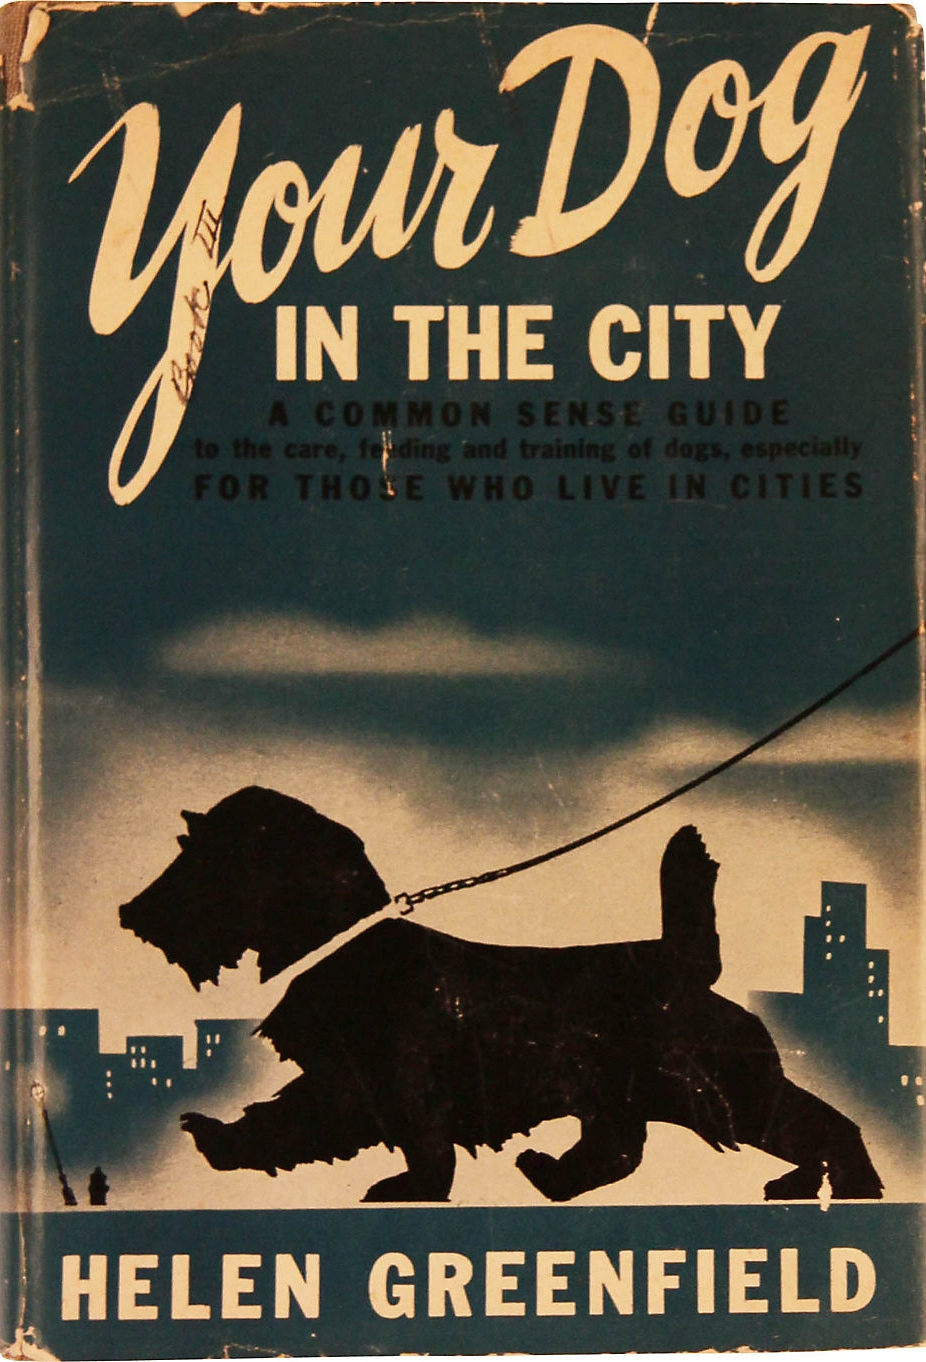 Your dog in the city 1945 via